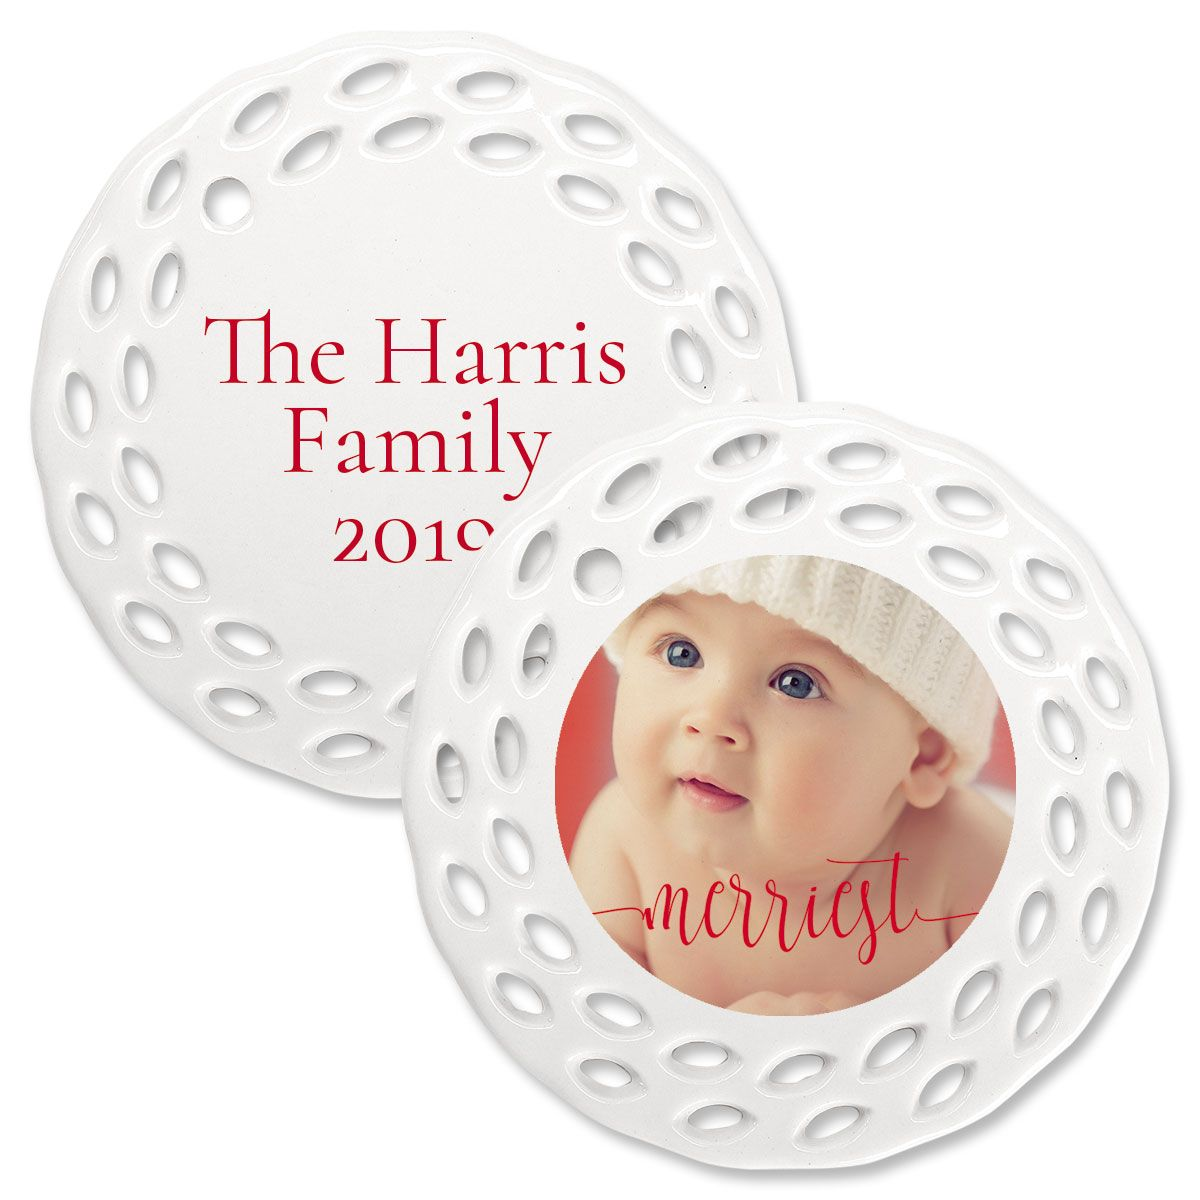 Merriest Personalized Doily Photo Ornament